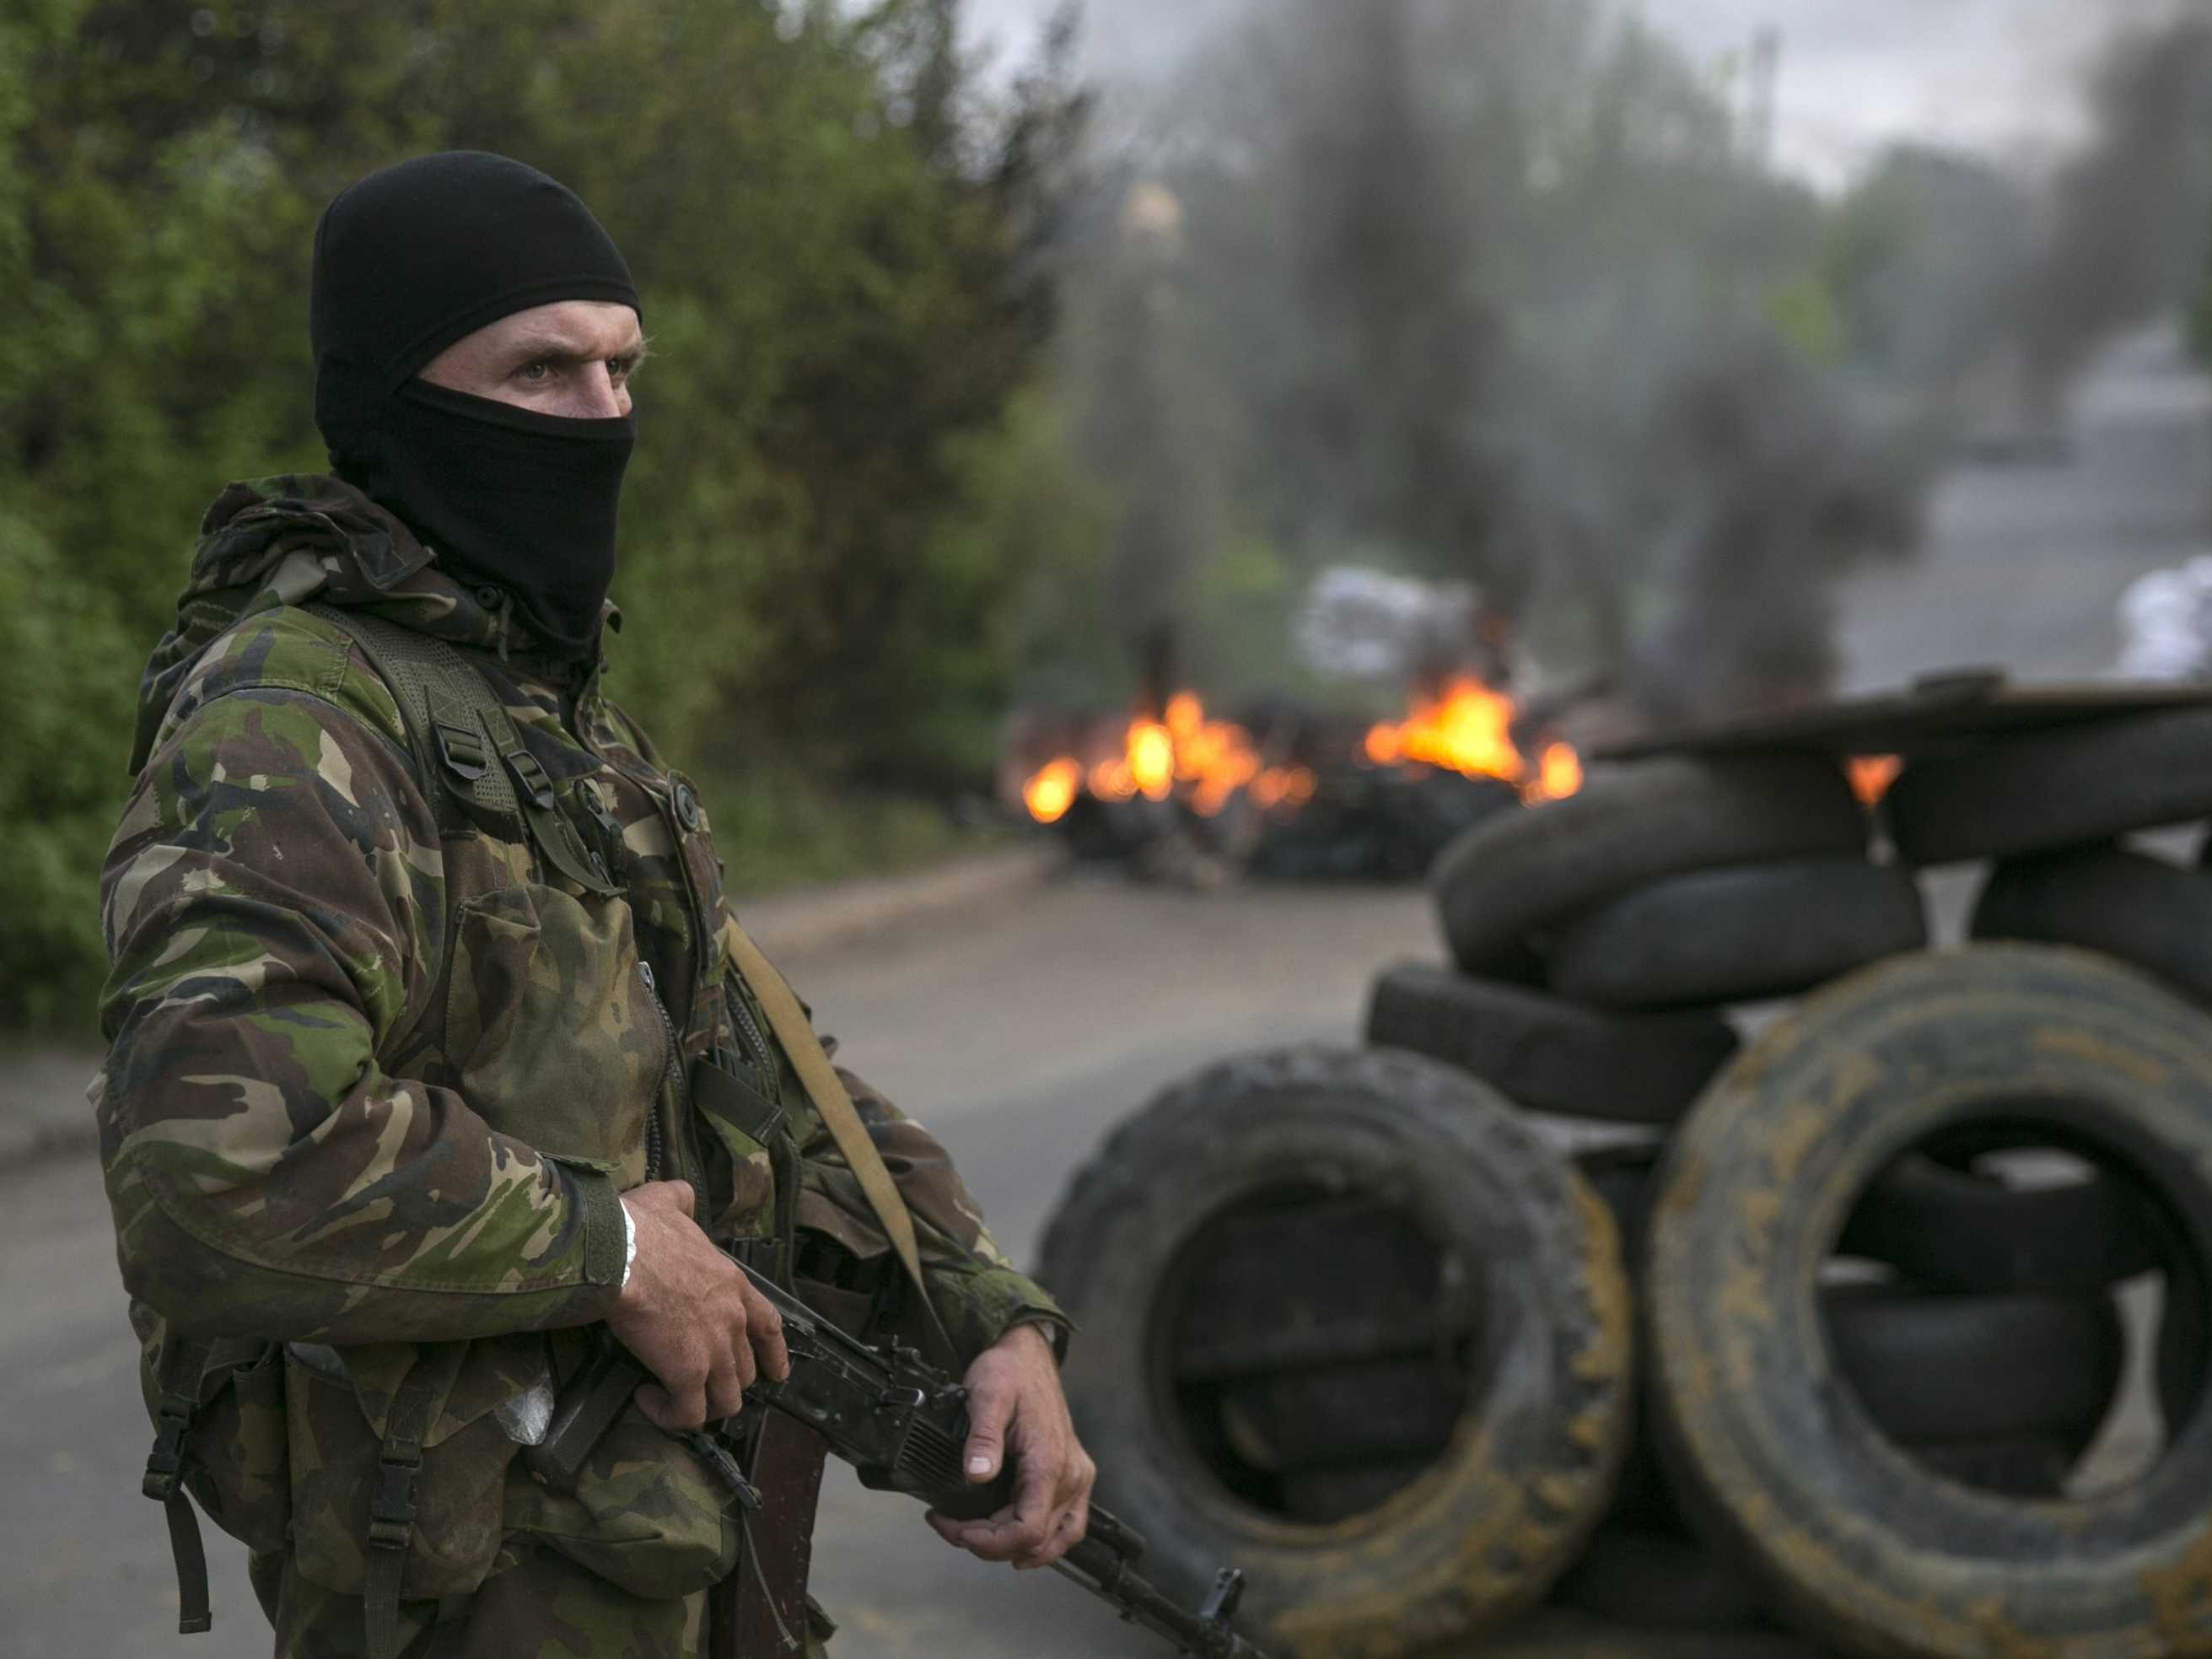 ukraine separatists have shot down multiple aircraft over the past month1 Low season… War